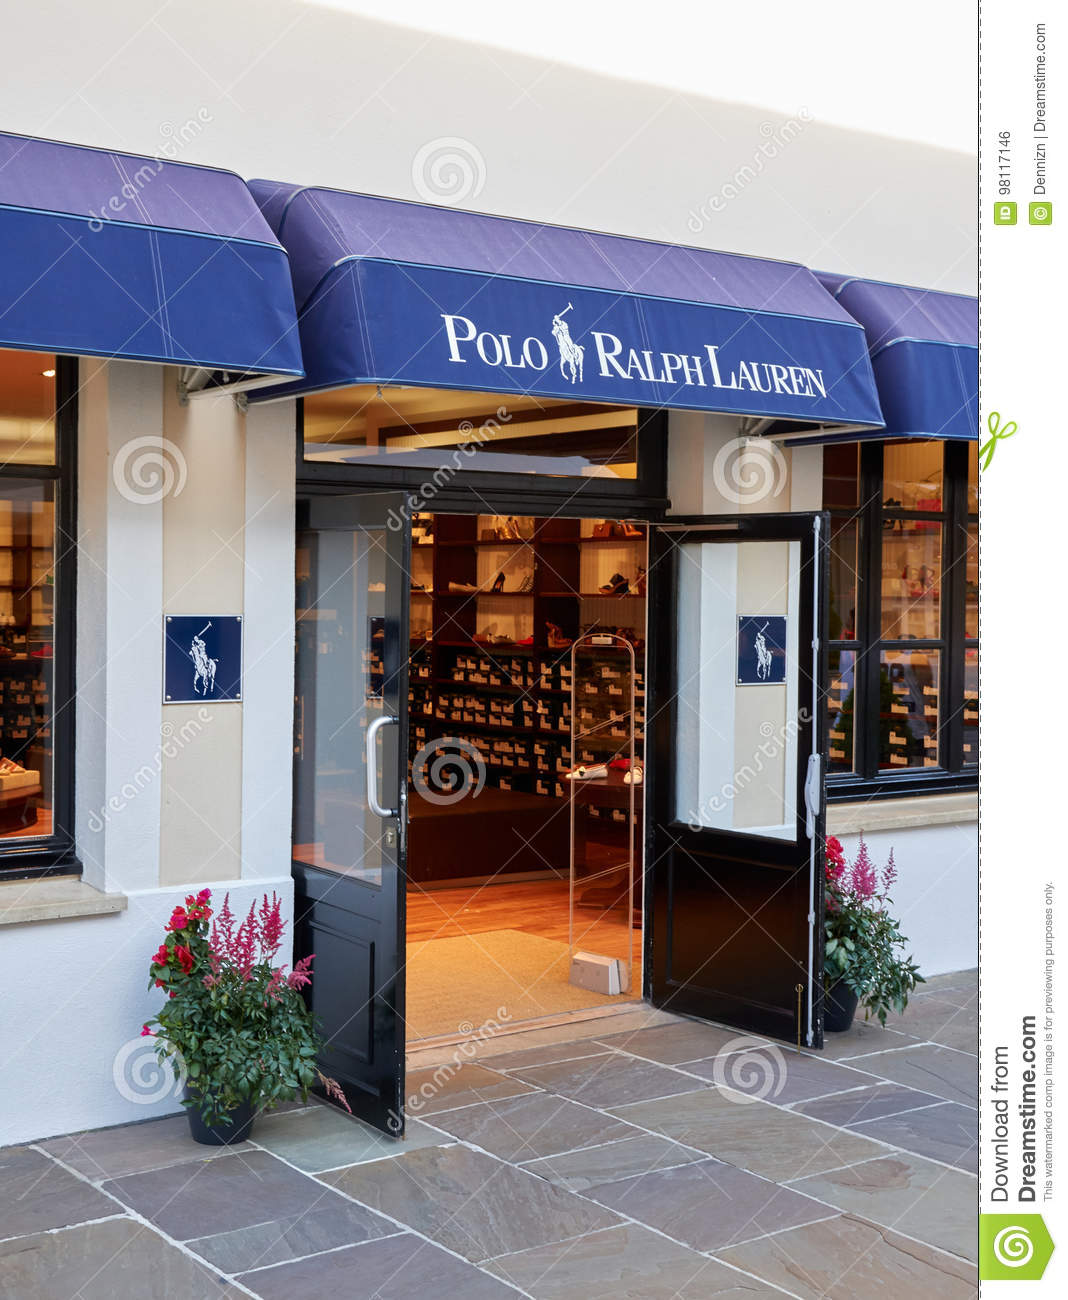 72996a1f93 Polo Ralph Lauren Boutique In La Vallee Village. Editorial Photo ...